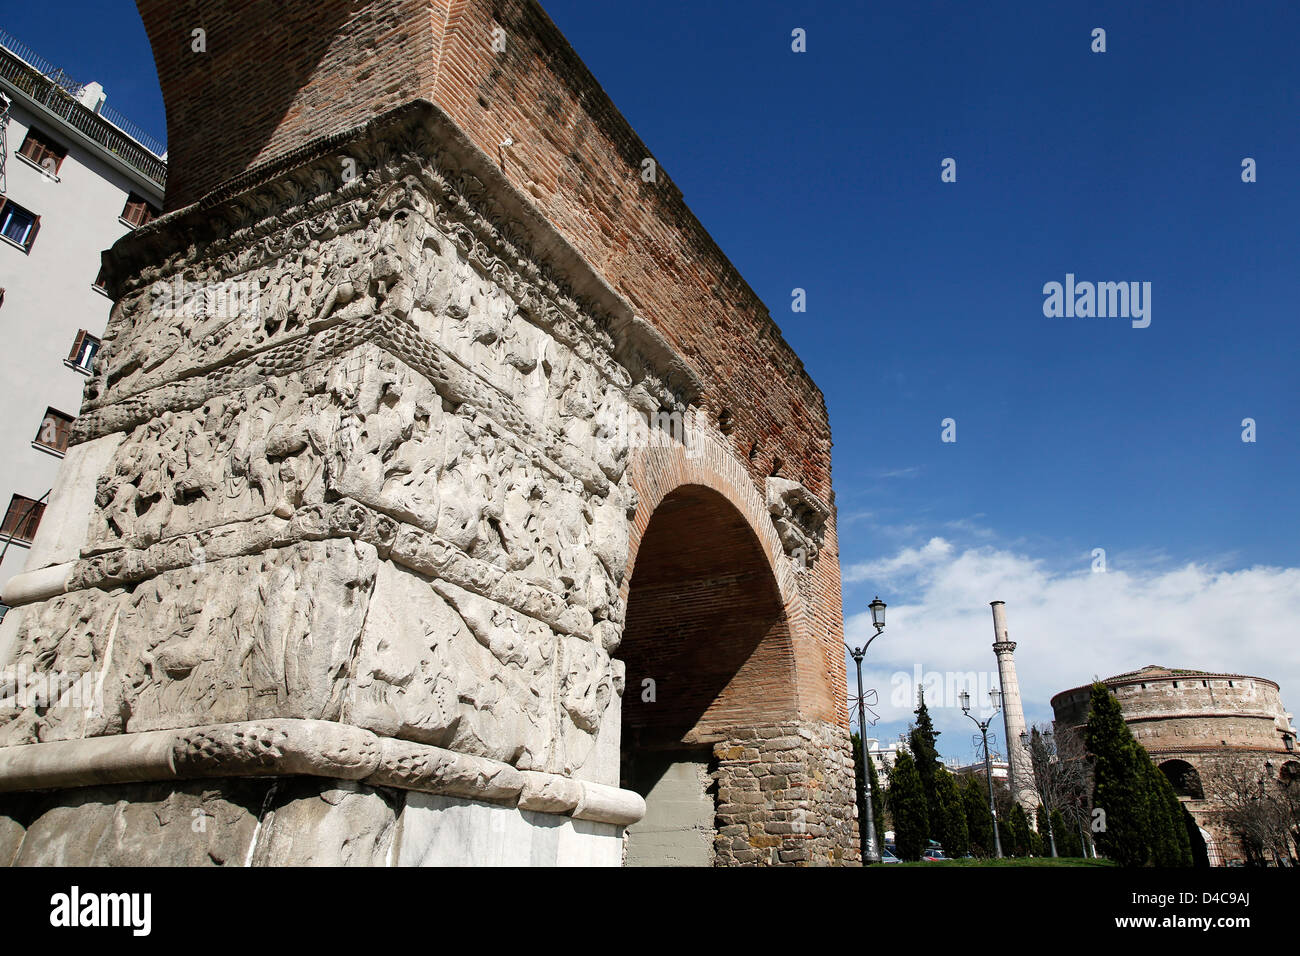 The Arch of Galerius (or Kamara) and the Rotunda are neighboring early 4th-century monuments in the city of Thessaloniki, - Stock Image